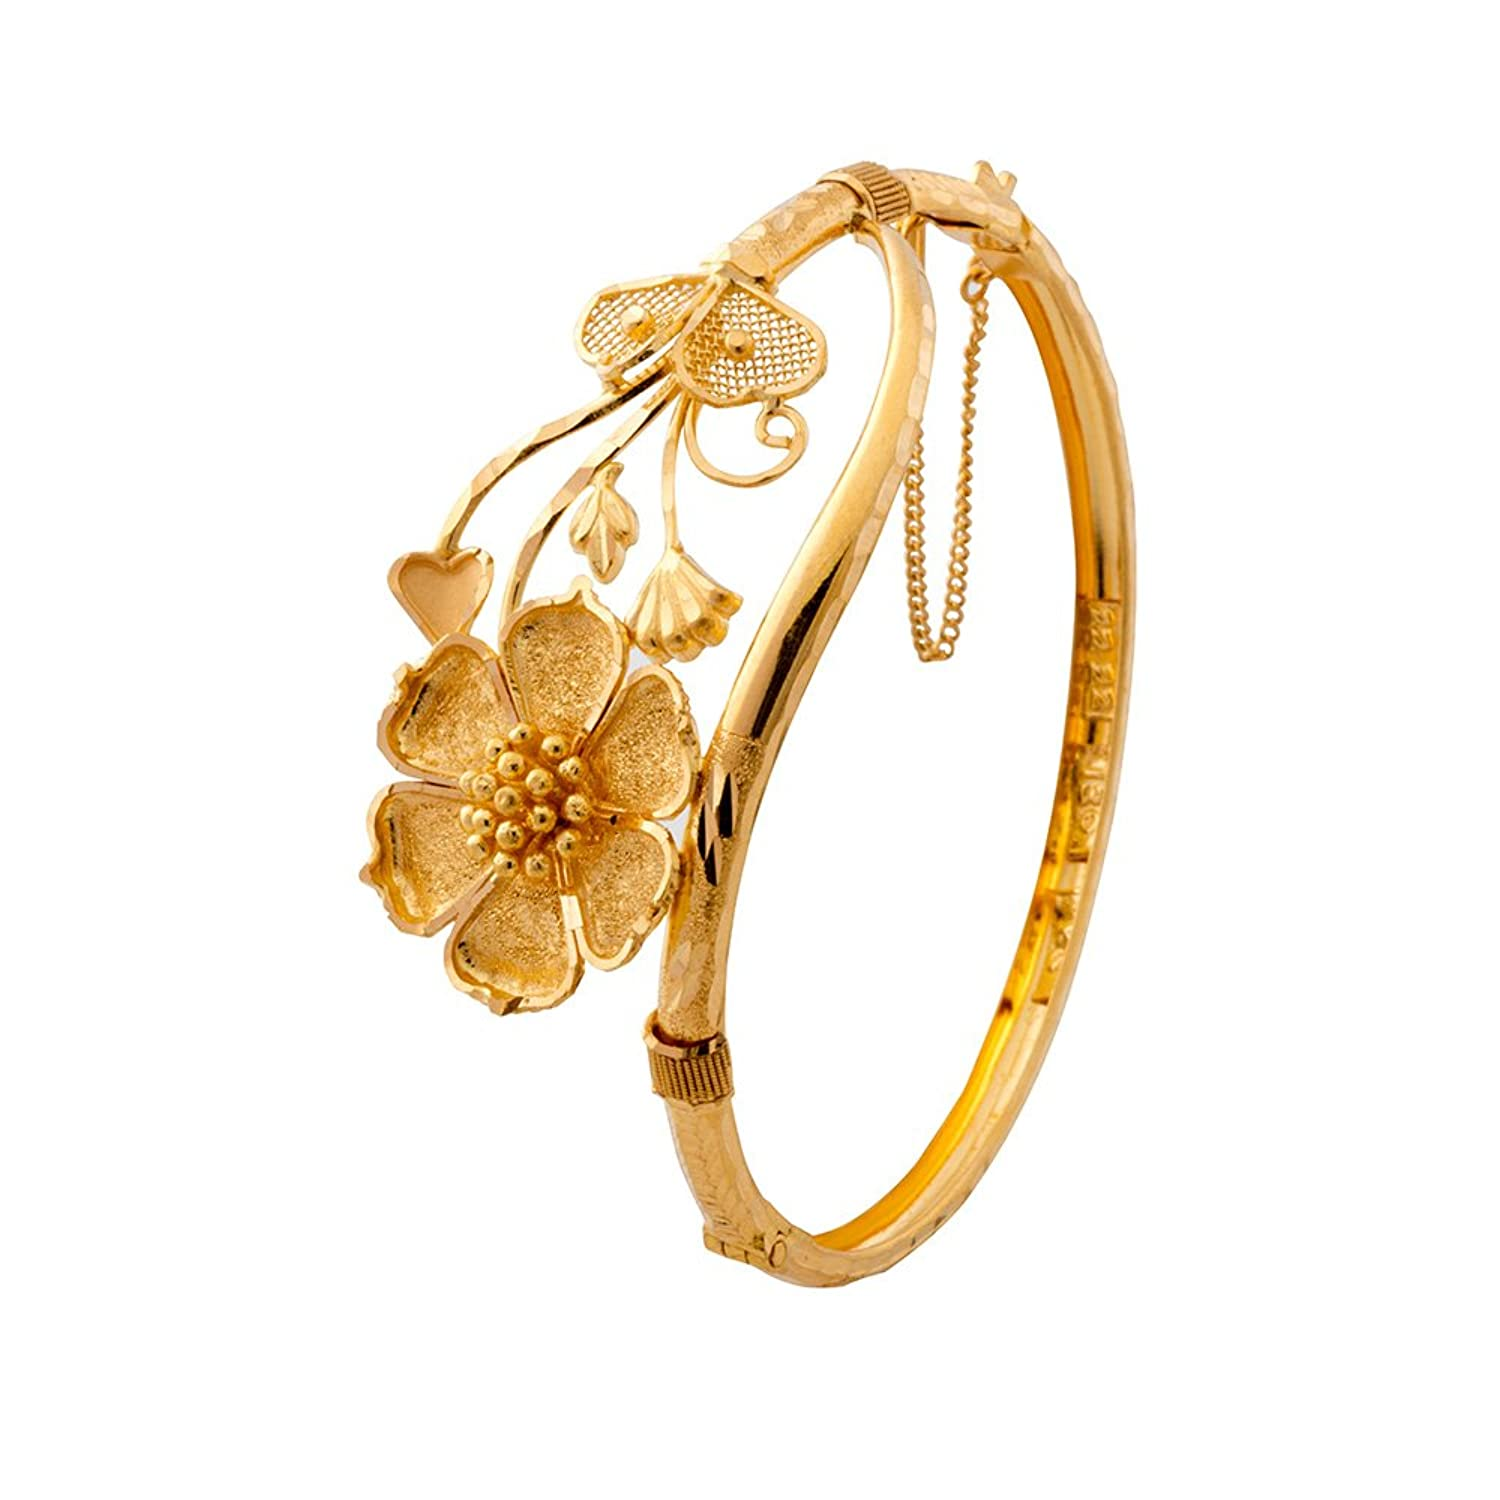 Awesome Senco Gold Ring Degain New 2016 Gallery - Jewelry ...